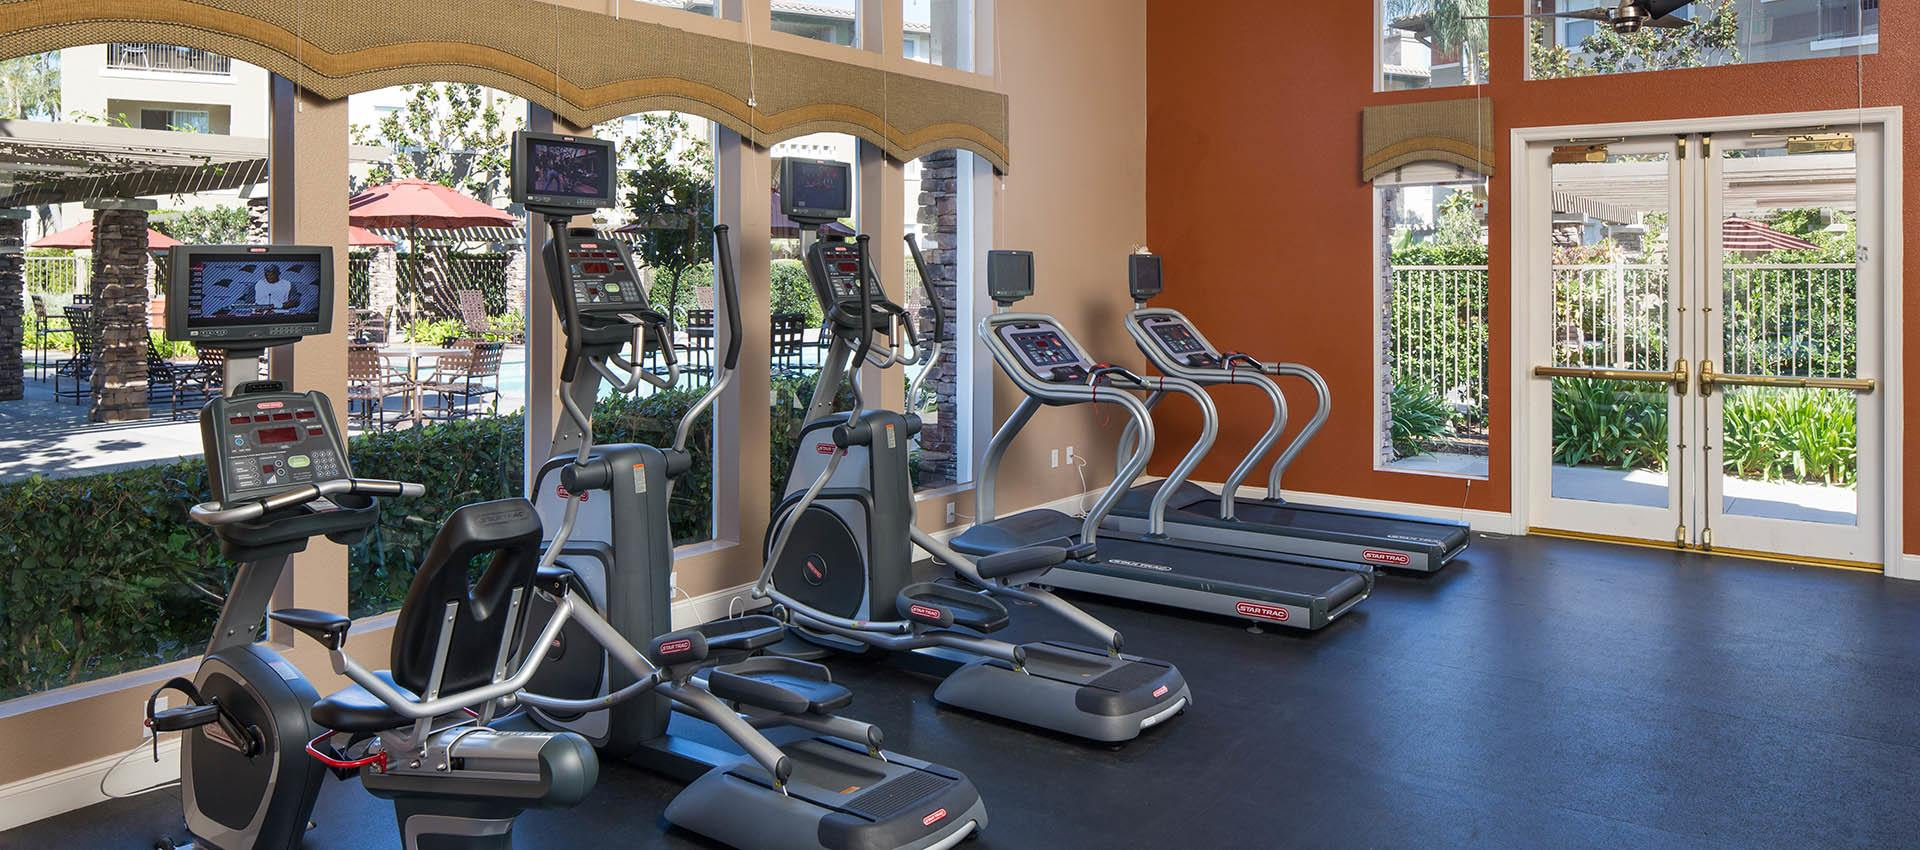 24 Hour Fitness Center Amenities Gallery